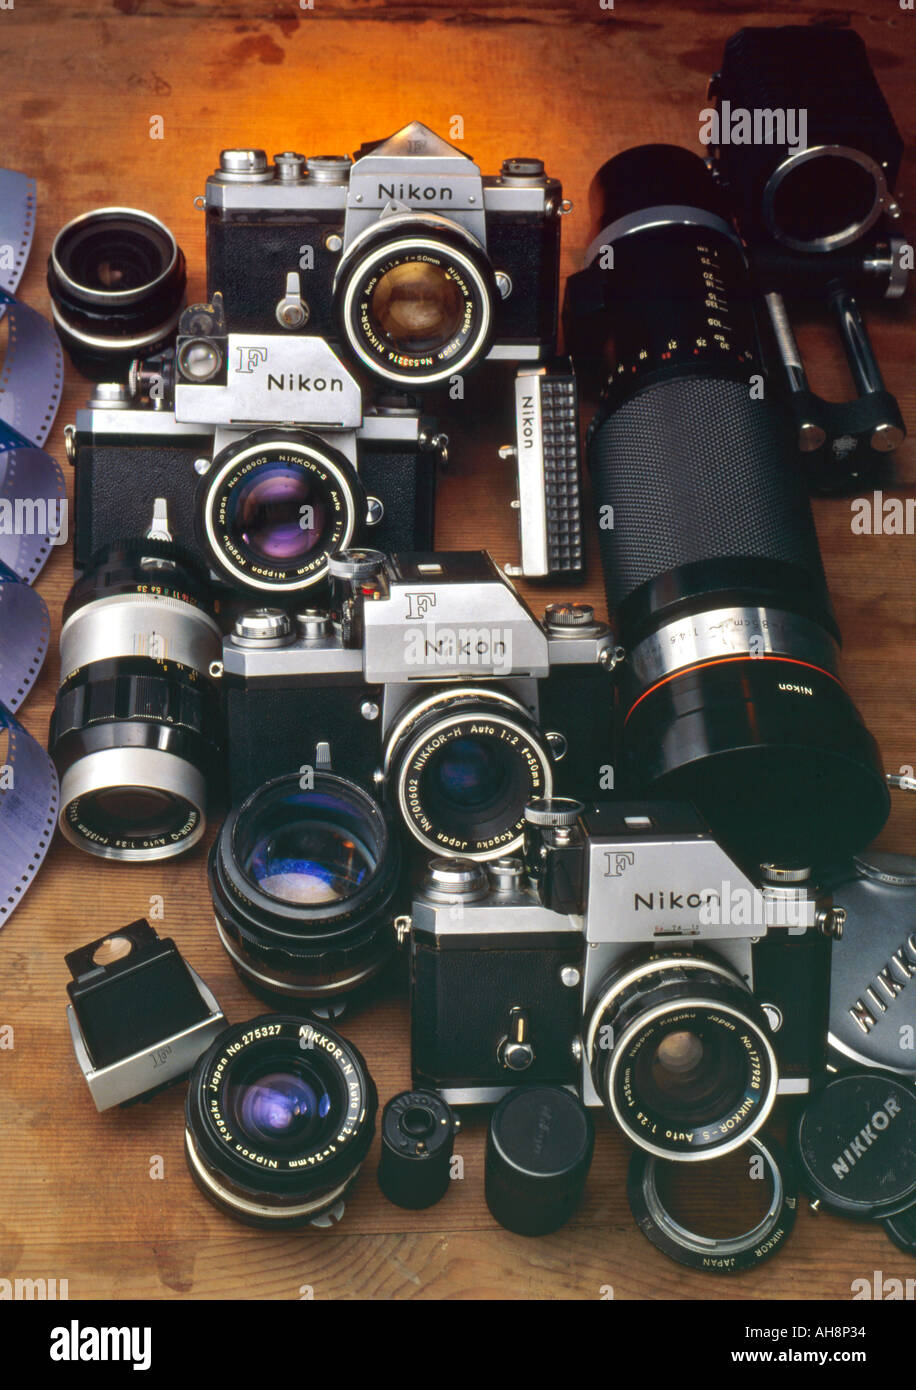 Nikon F Cameras SLR Bodies wide angle lenses tele photo lens film prism finder cap Evolution of Photography - Stock Image